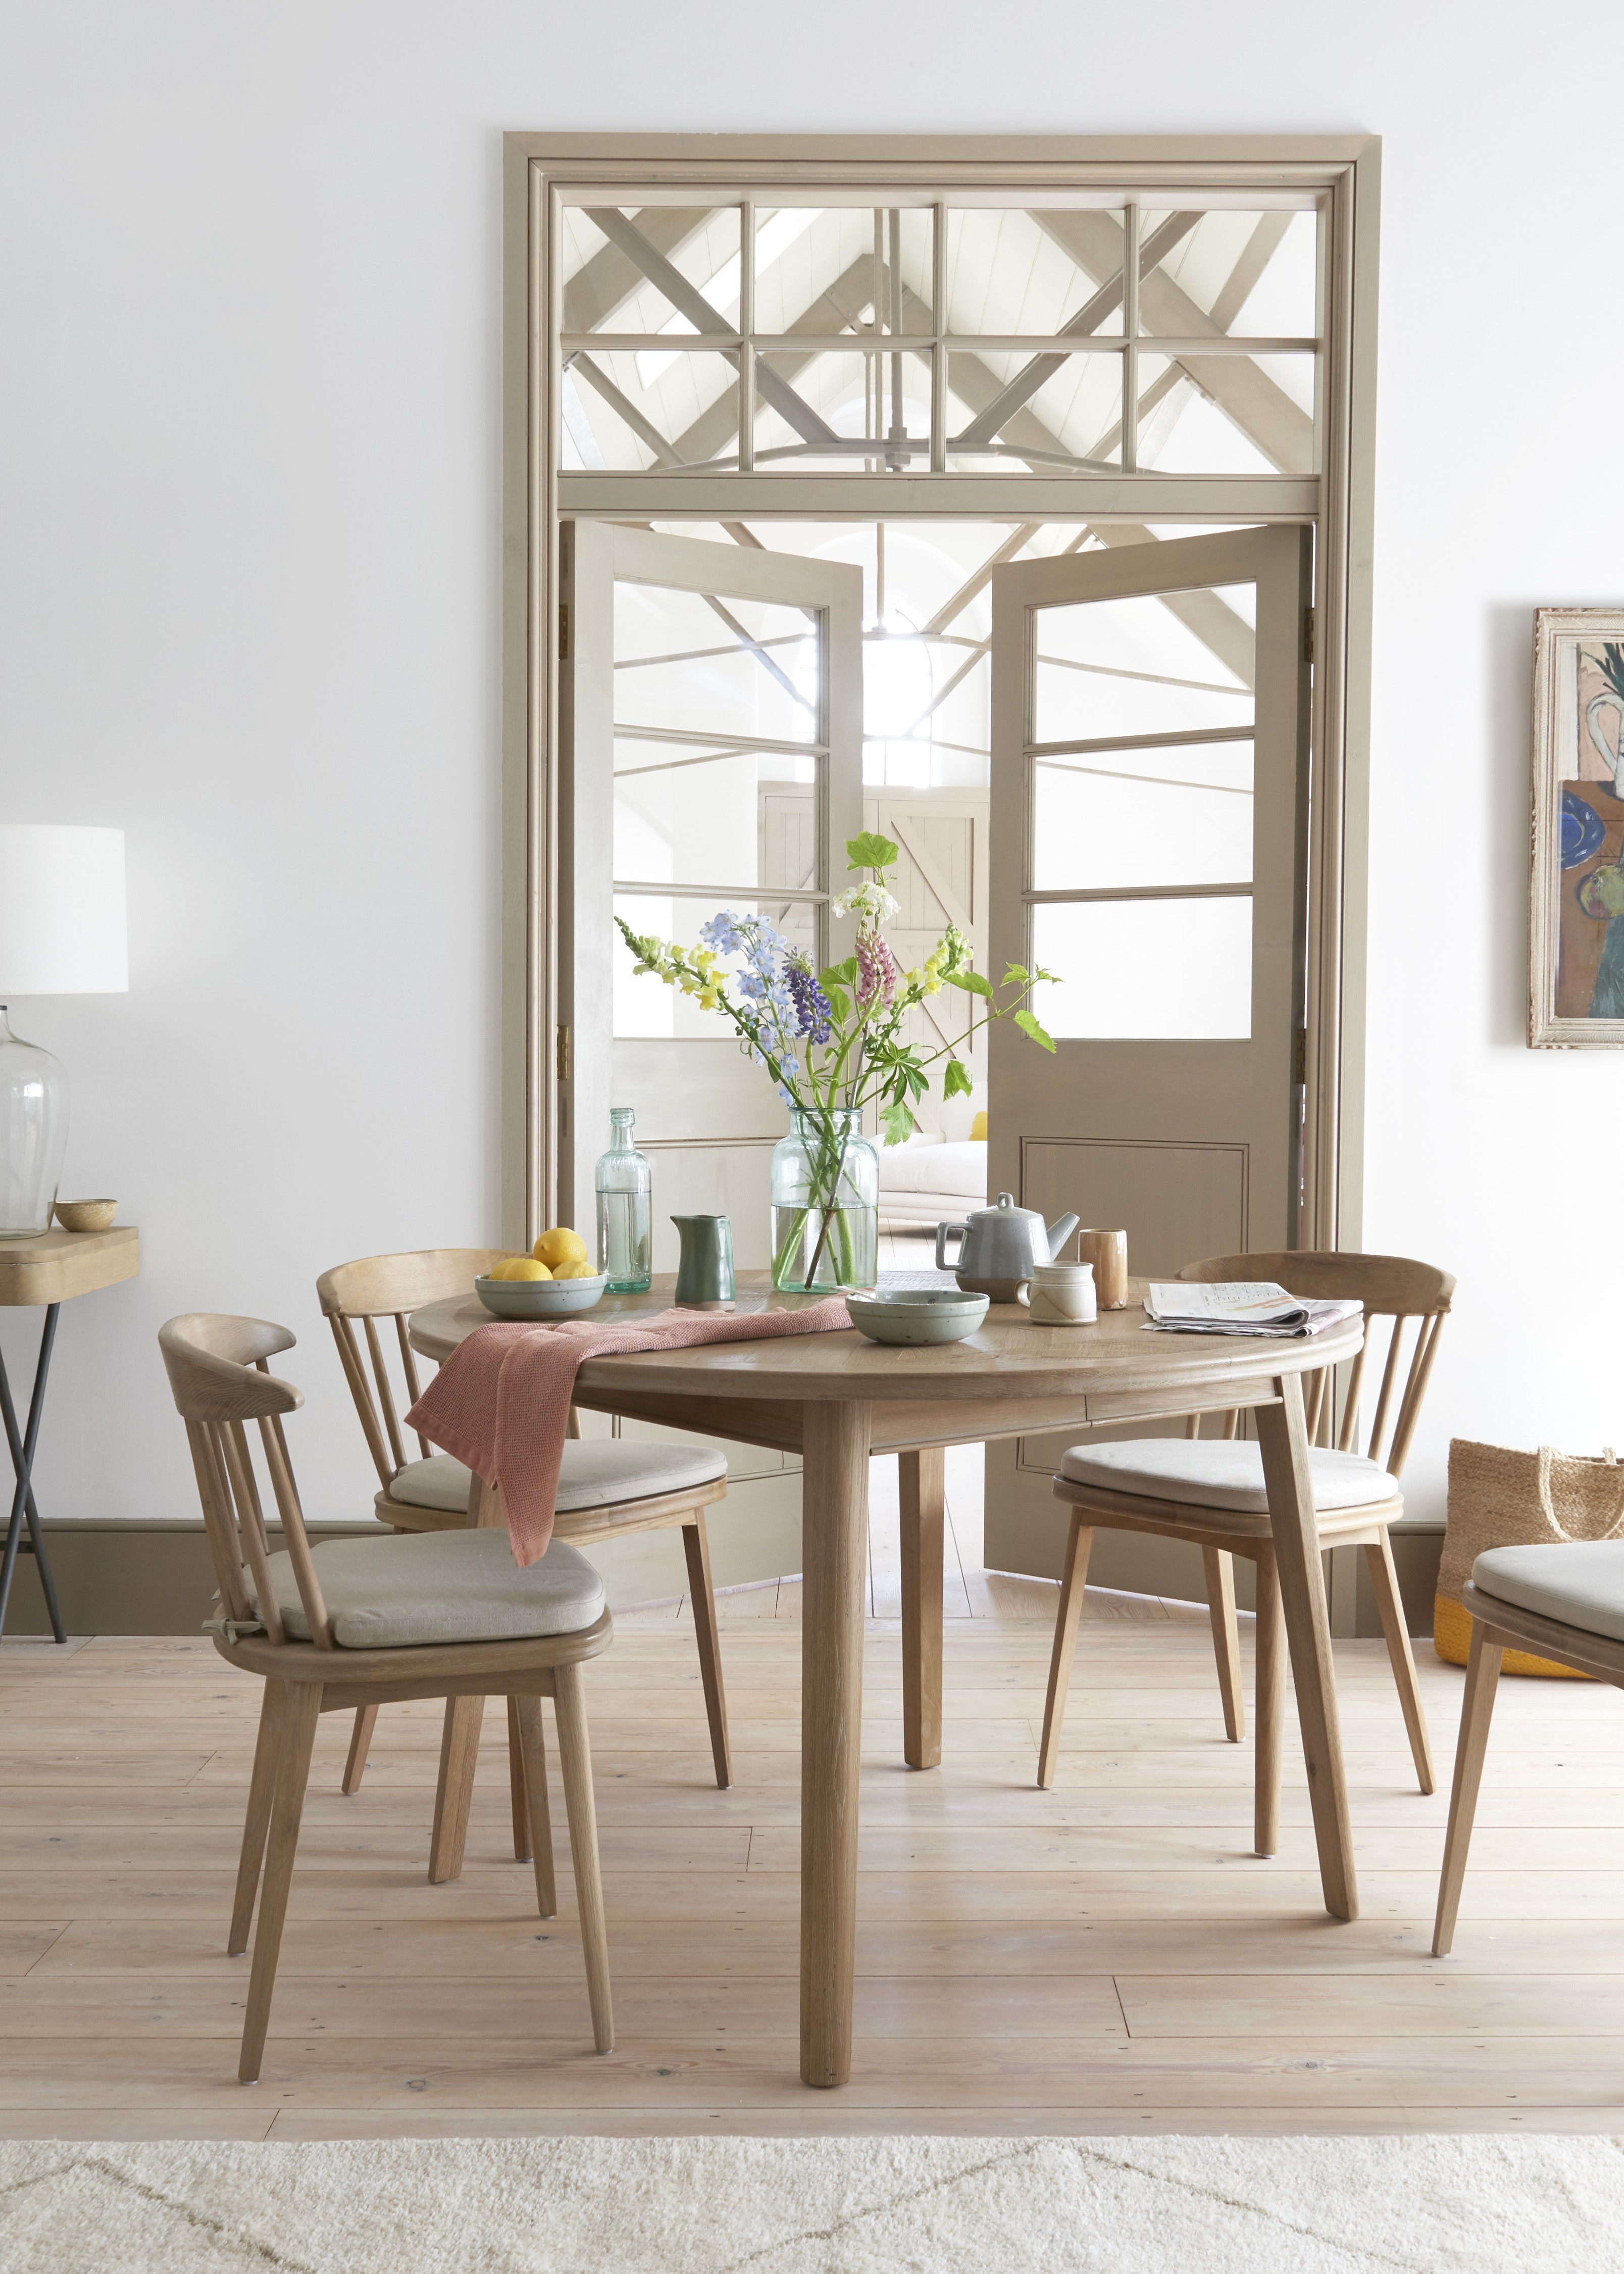 Parquet Pie Extendable Kitchen Table Round Wooden Dining Table Round Pedestal Dining Table Large Round Dining Table